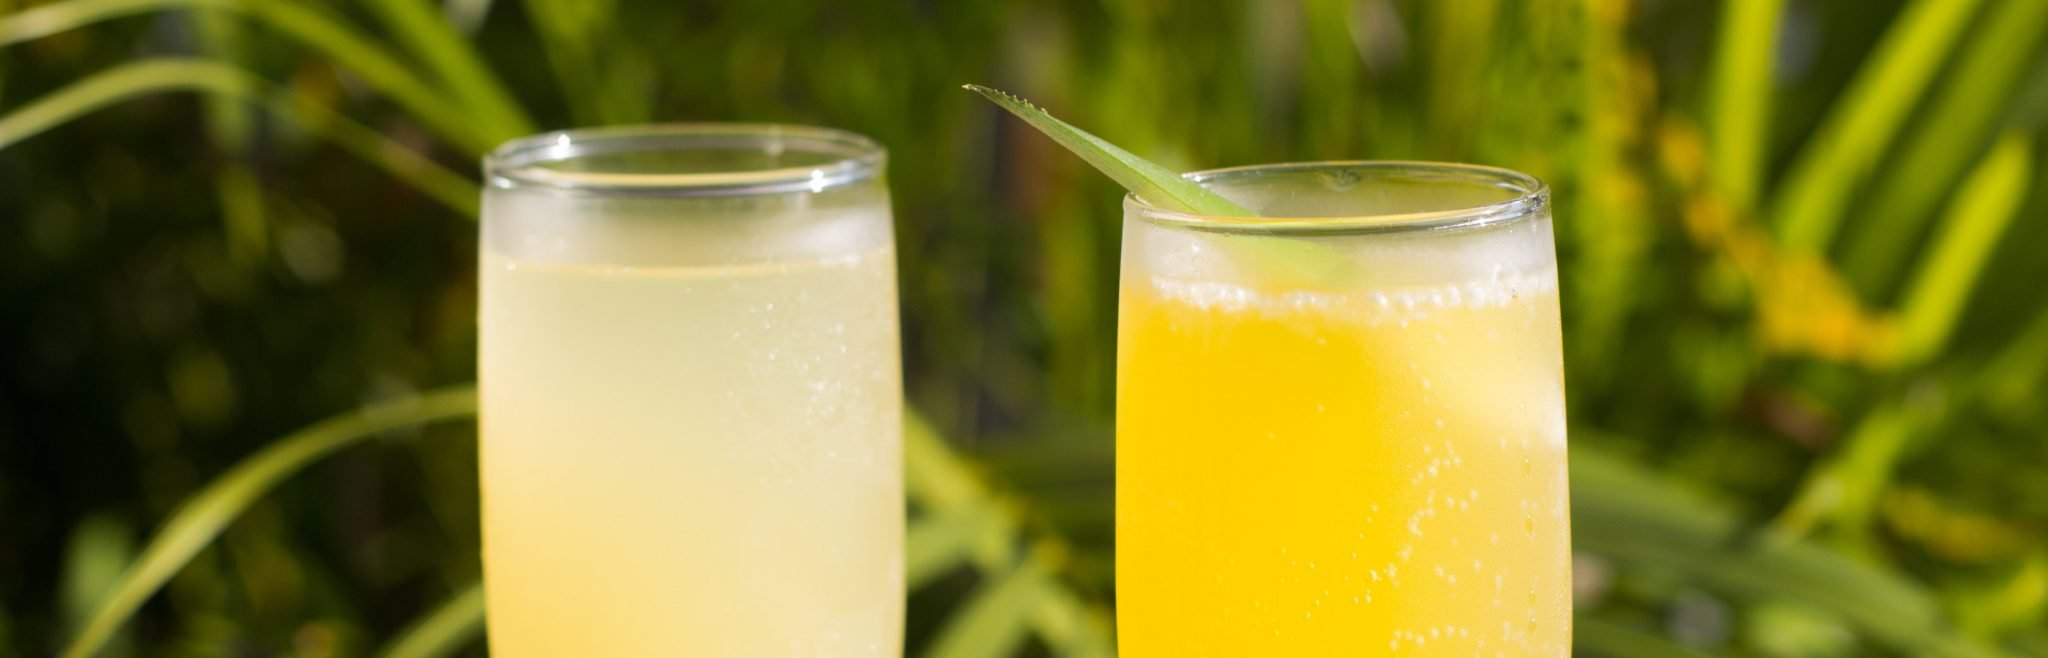 Brunch Treasure Island | Bottomless Mimosa, Outdoor Seating, Live Music